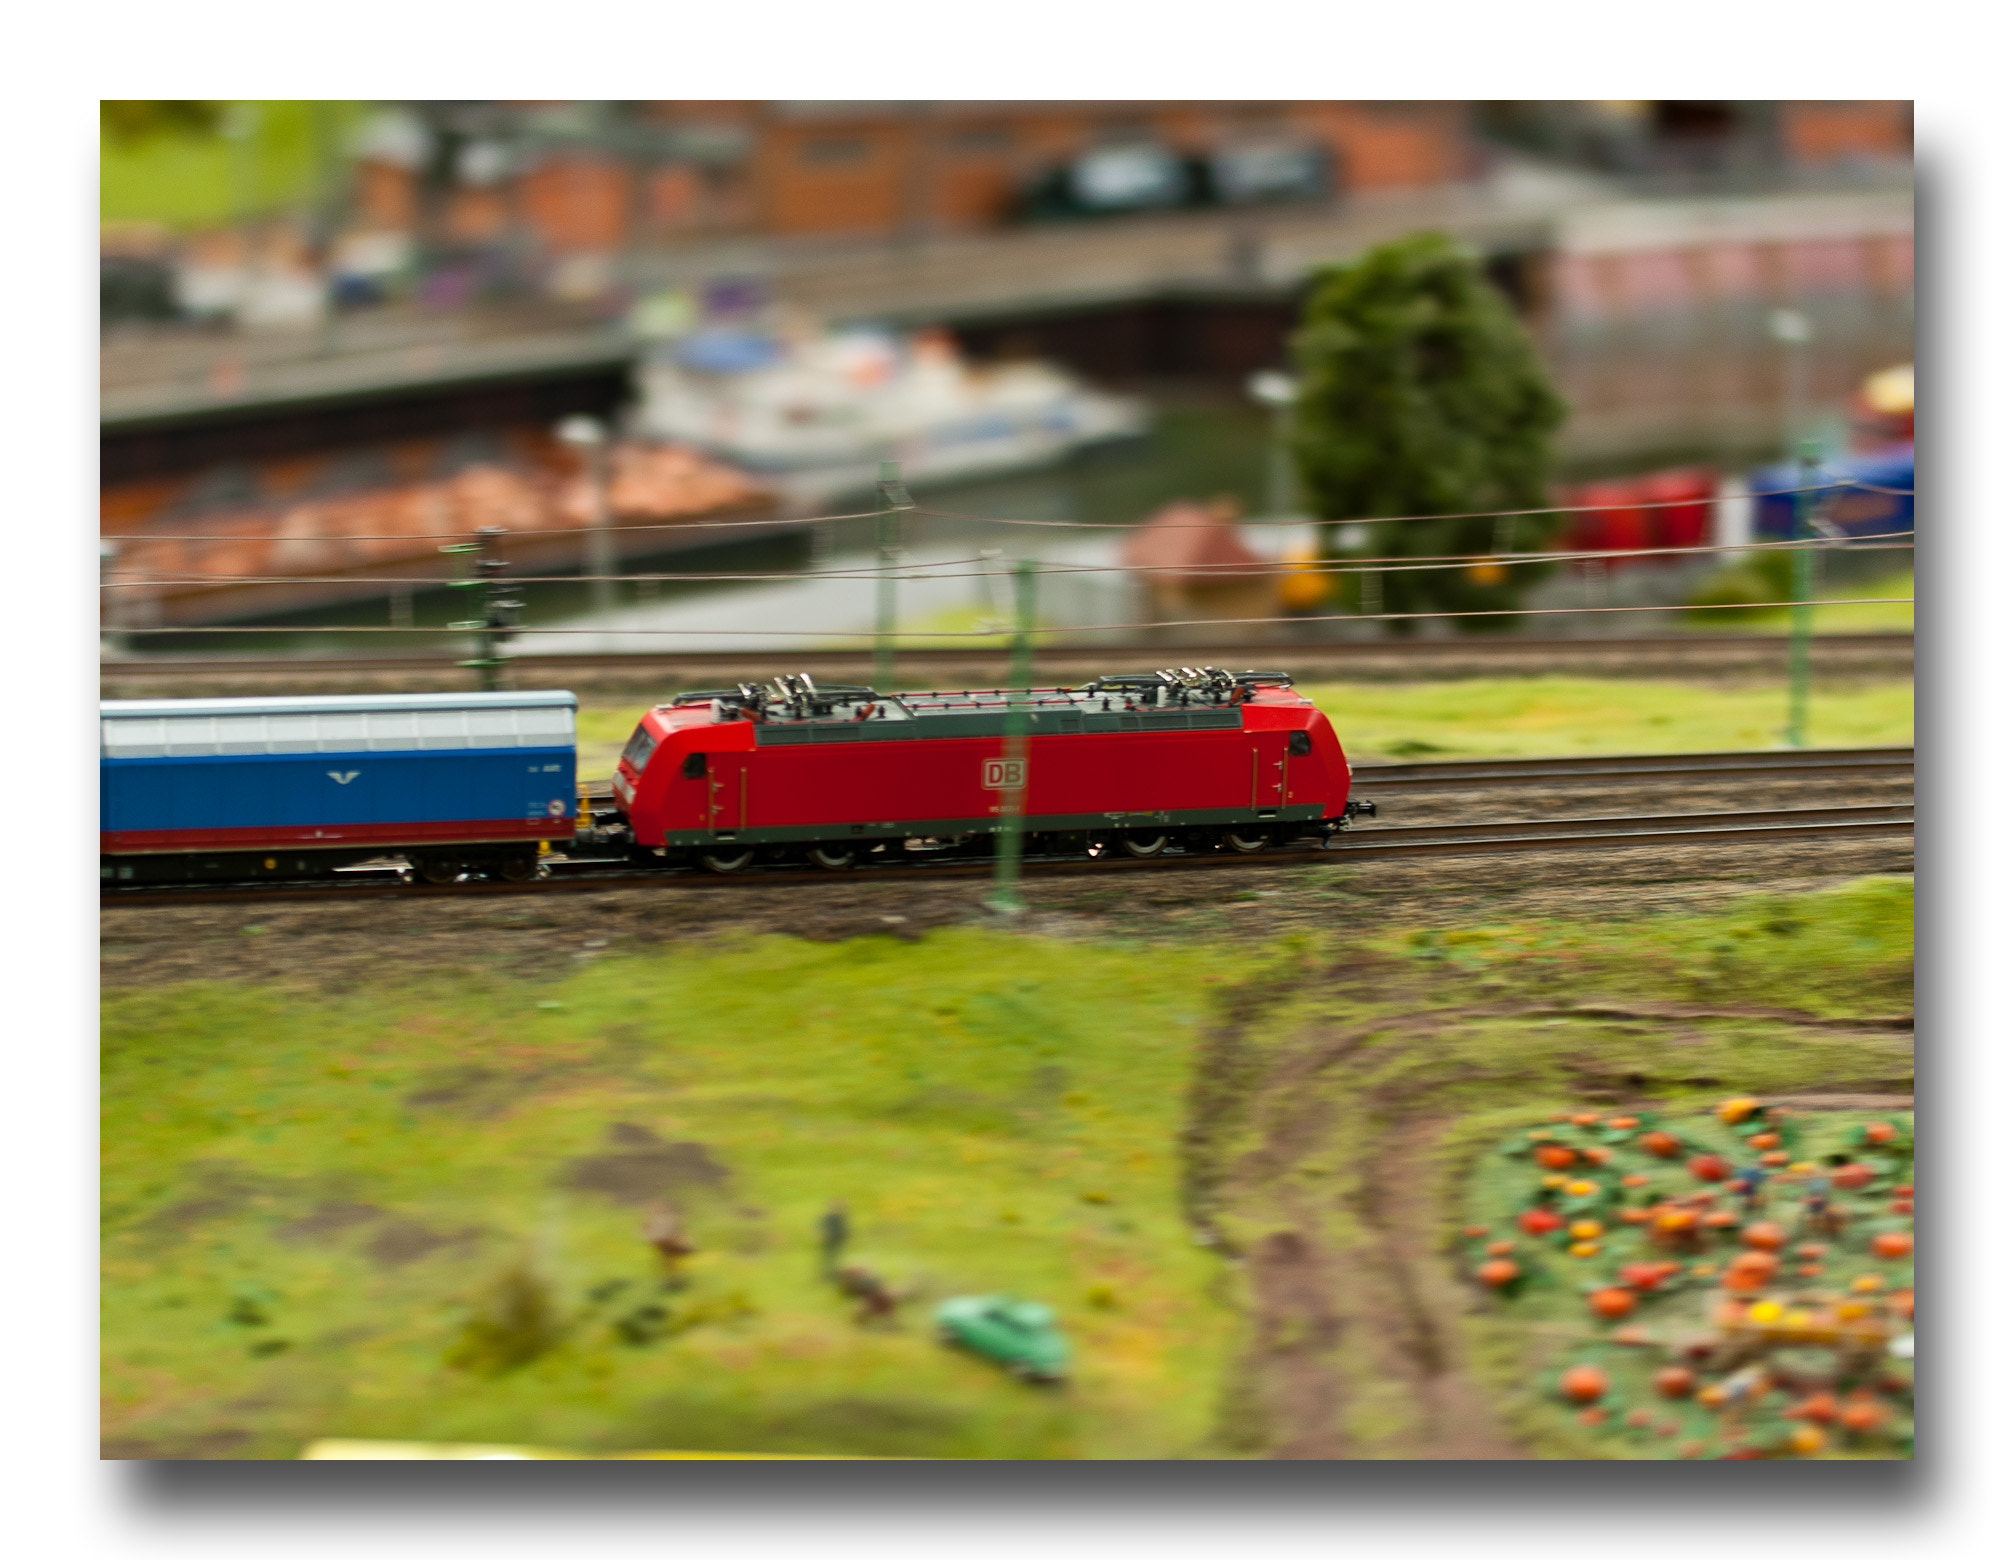 Photograph Güterzug im Miniaturwunderland by Timo Tewes on 500px